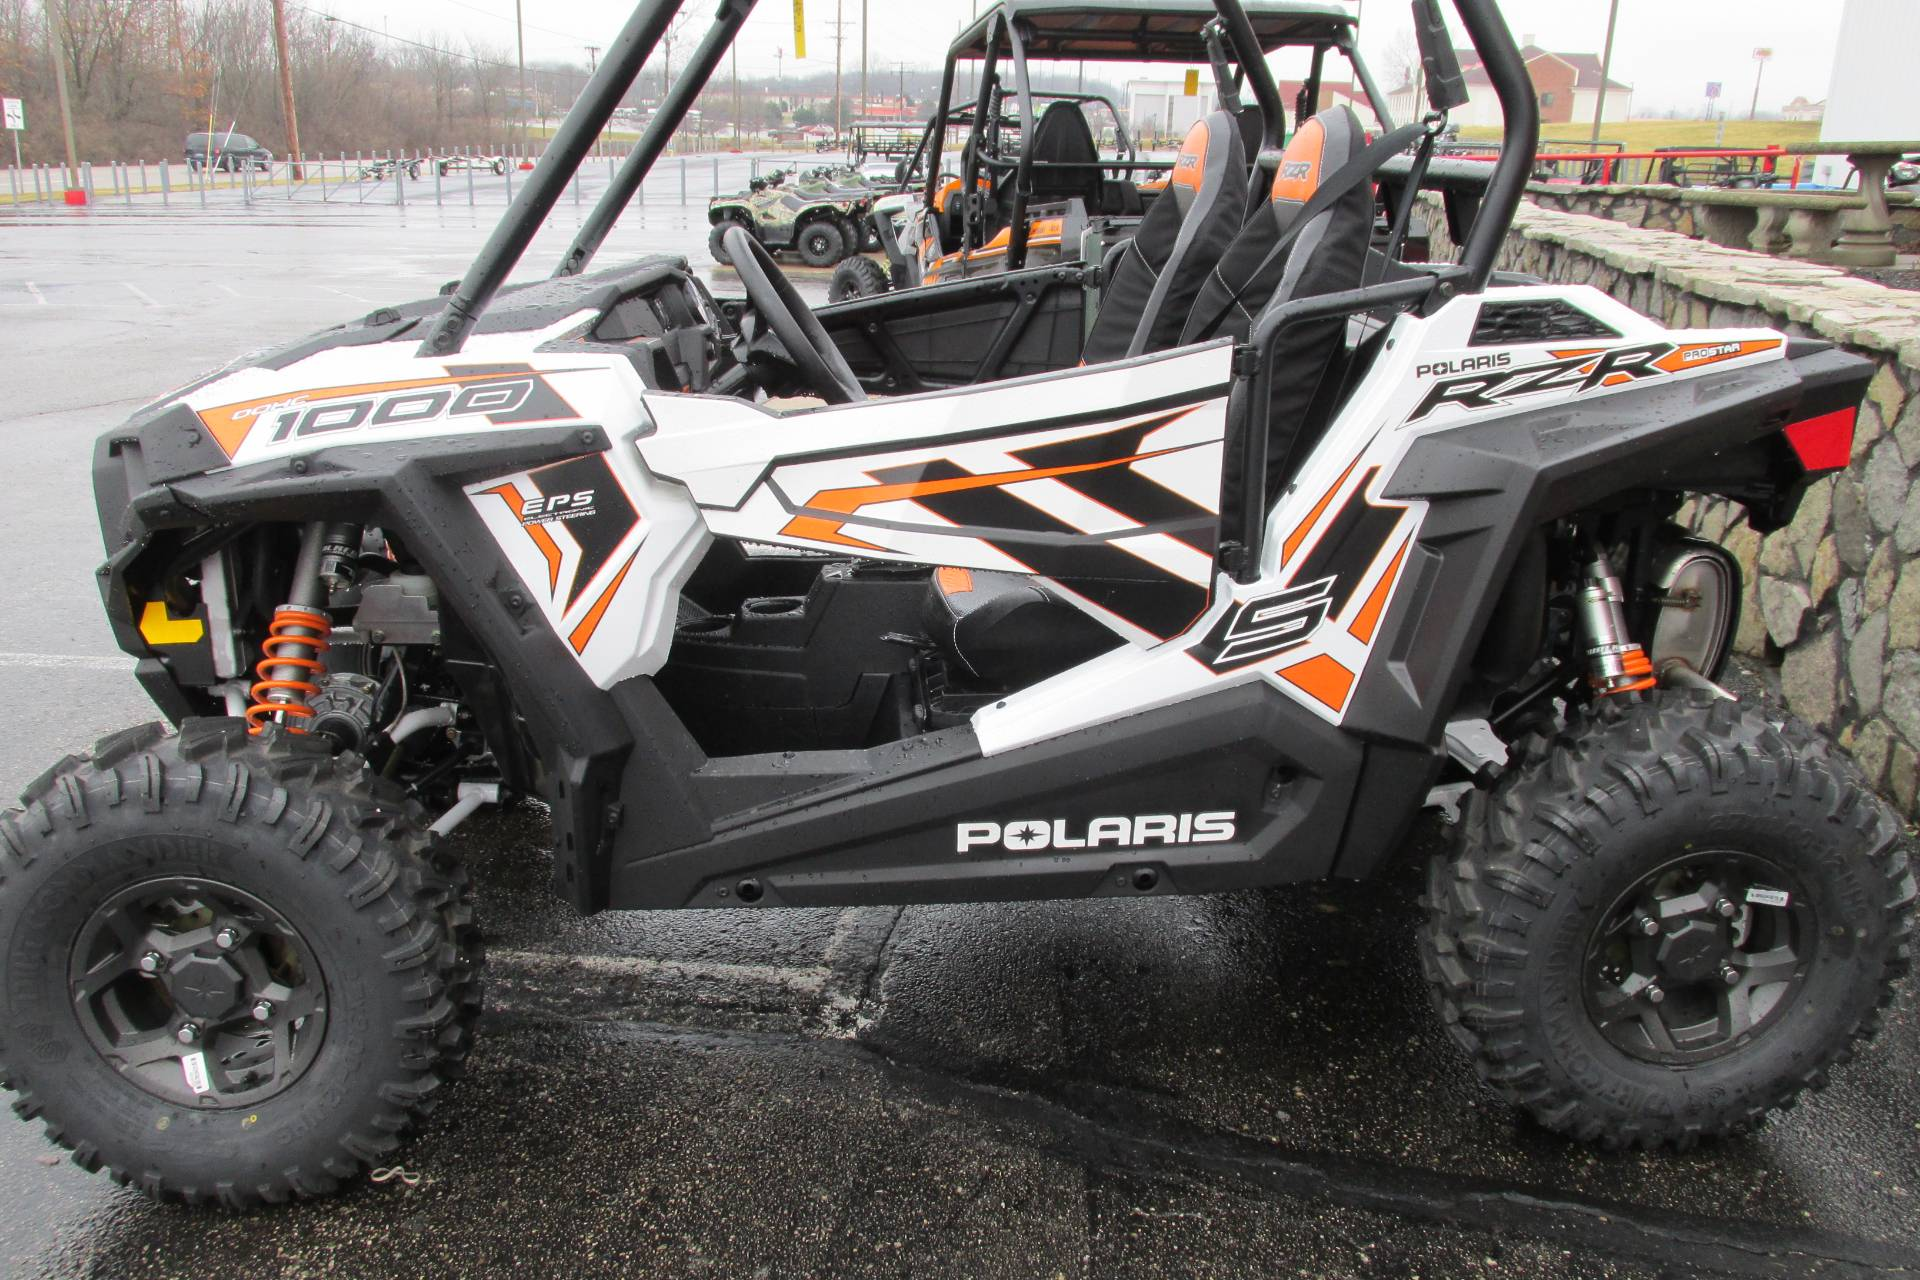 2018 Polaris RZR 1000S in Springfield, Ohio